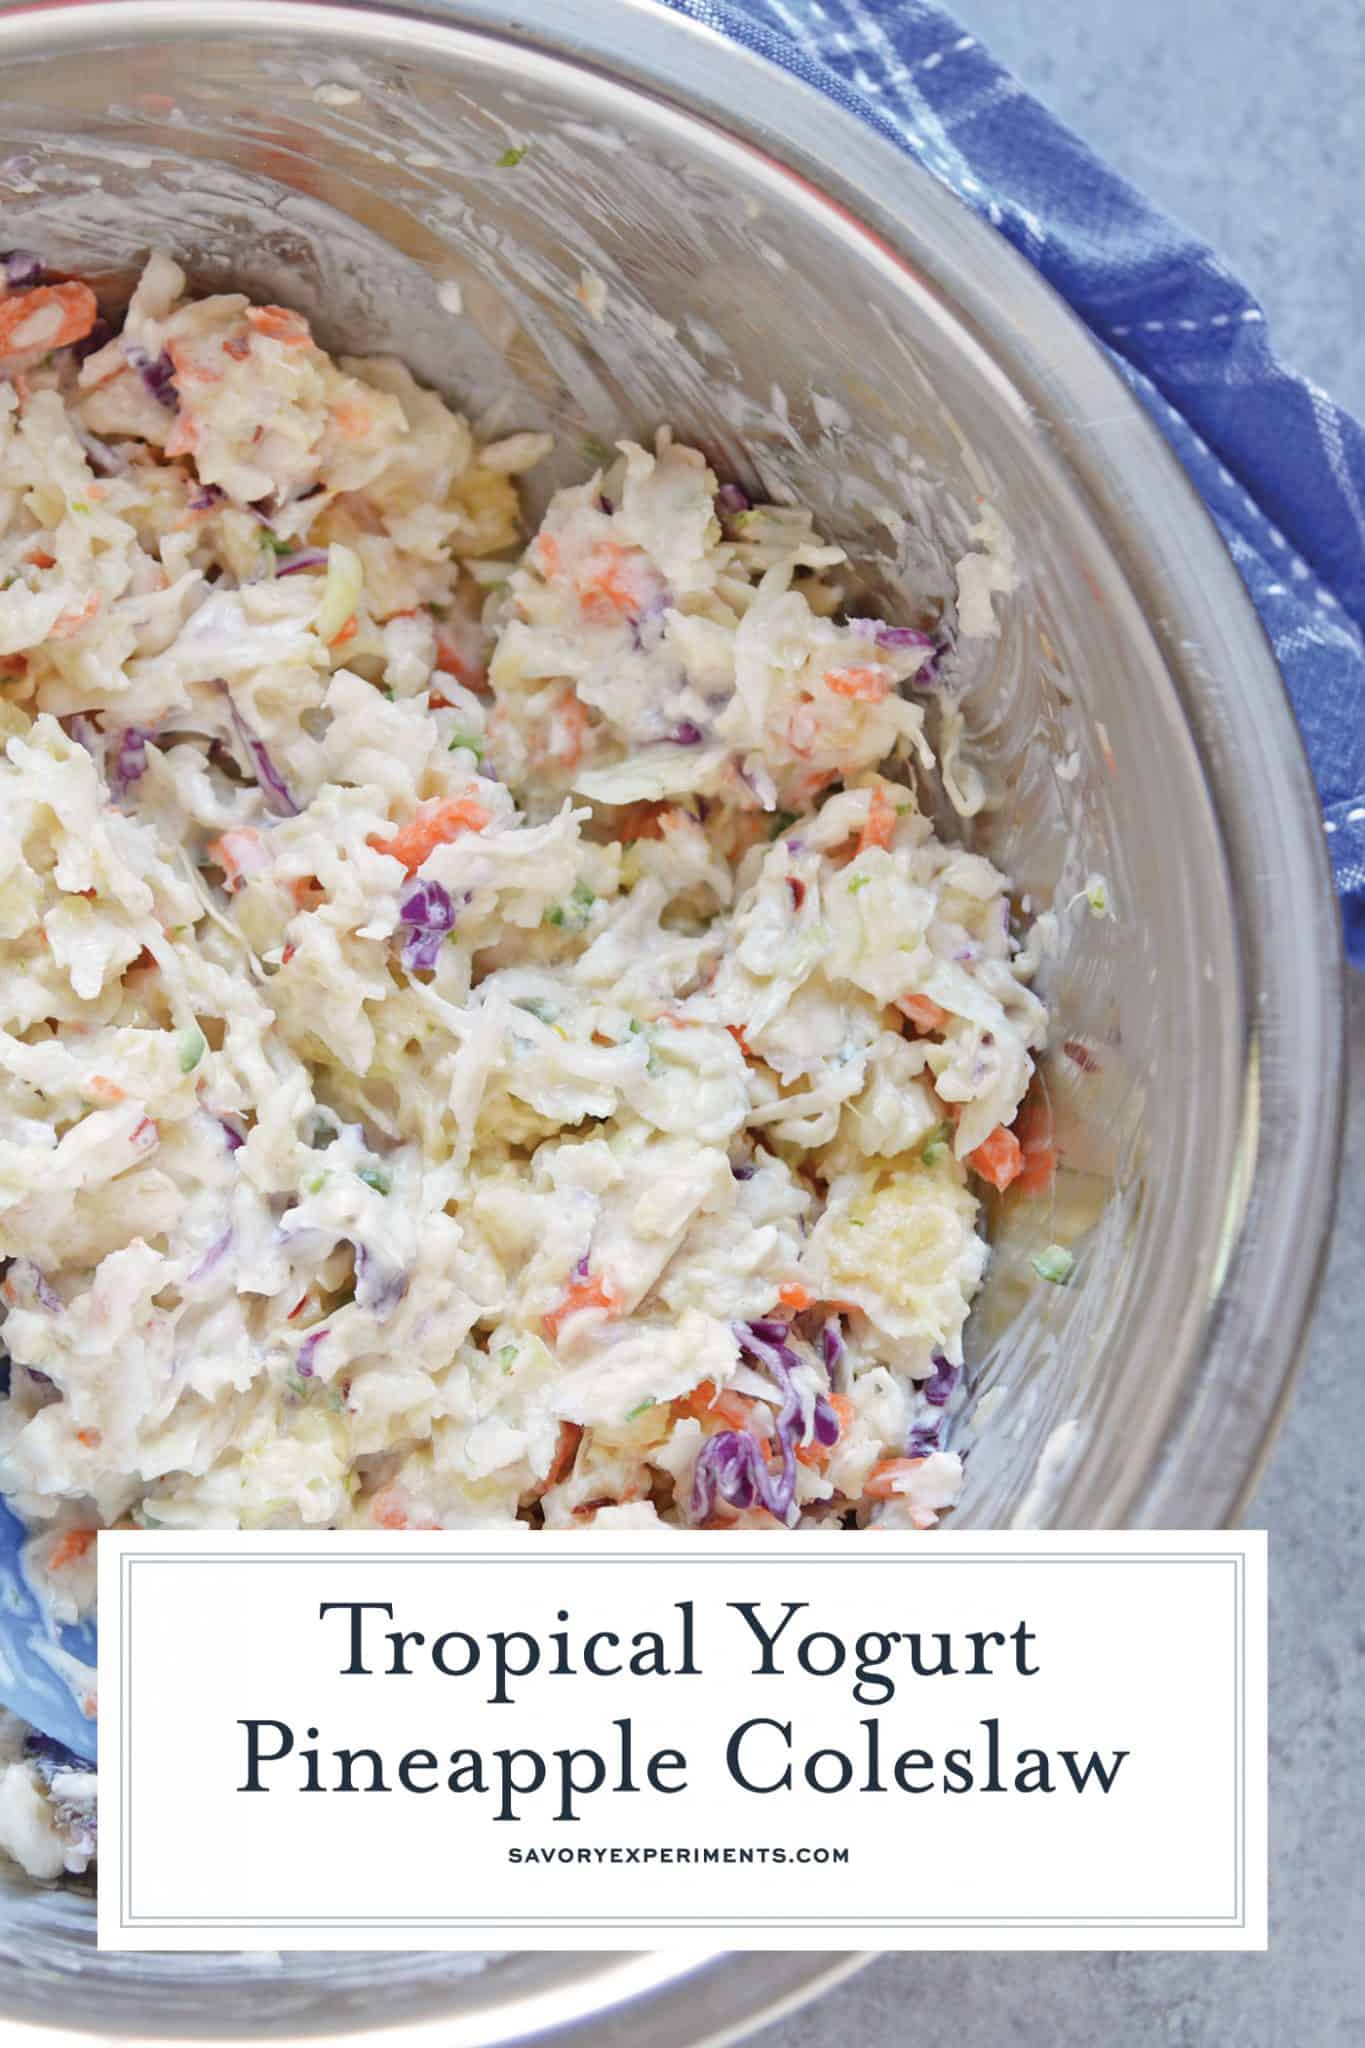 Yogurt Pineapple Coleslaw is a delicious homemade coleslaw that you can have ready in just 10 minutes! It has a yummy sweet and spicy flavor profile to it! #pineapplecoleslaw #nomayocoleslaw #healthycoleslawrecipe www.savoryexperiments.com